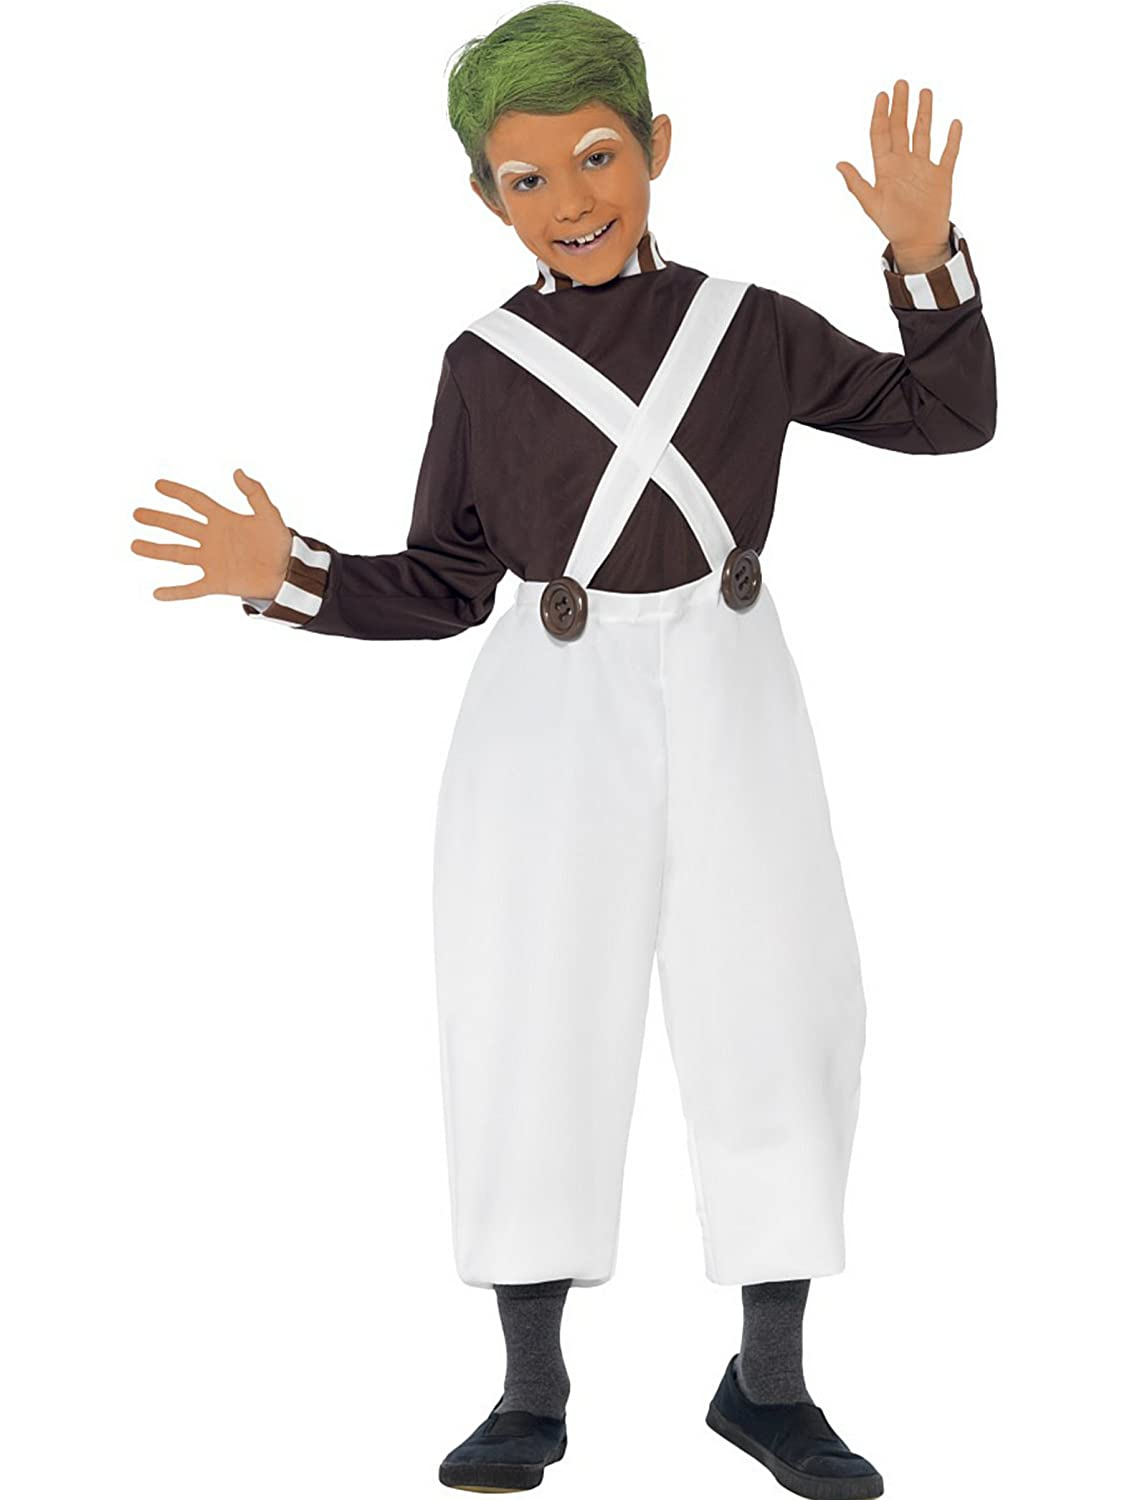 Amazon.com: Smiffy\'s Big Boys\' Ren Oompa Loompa Roald Dahl Costume ...